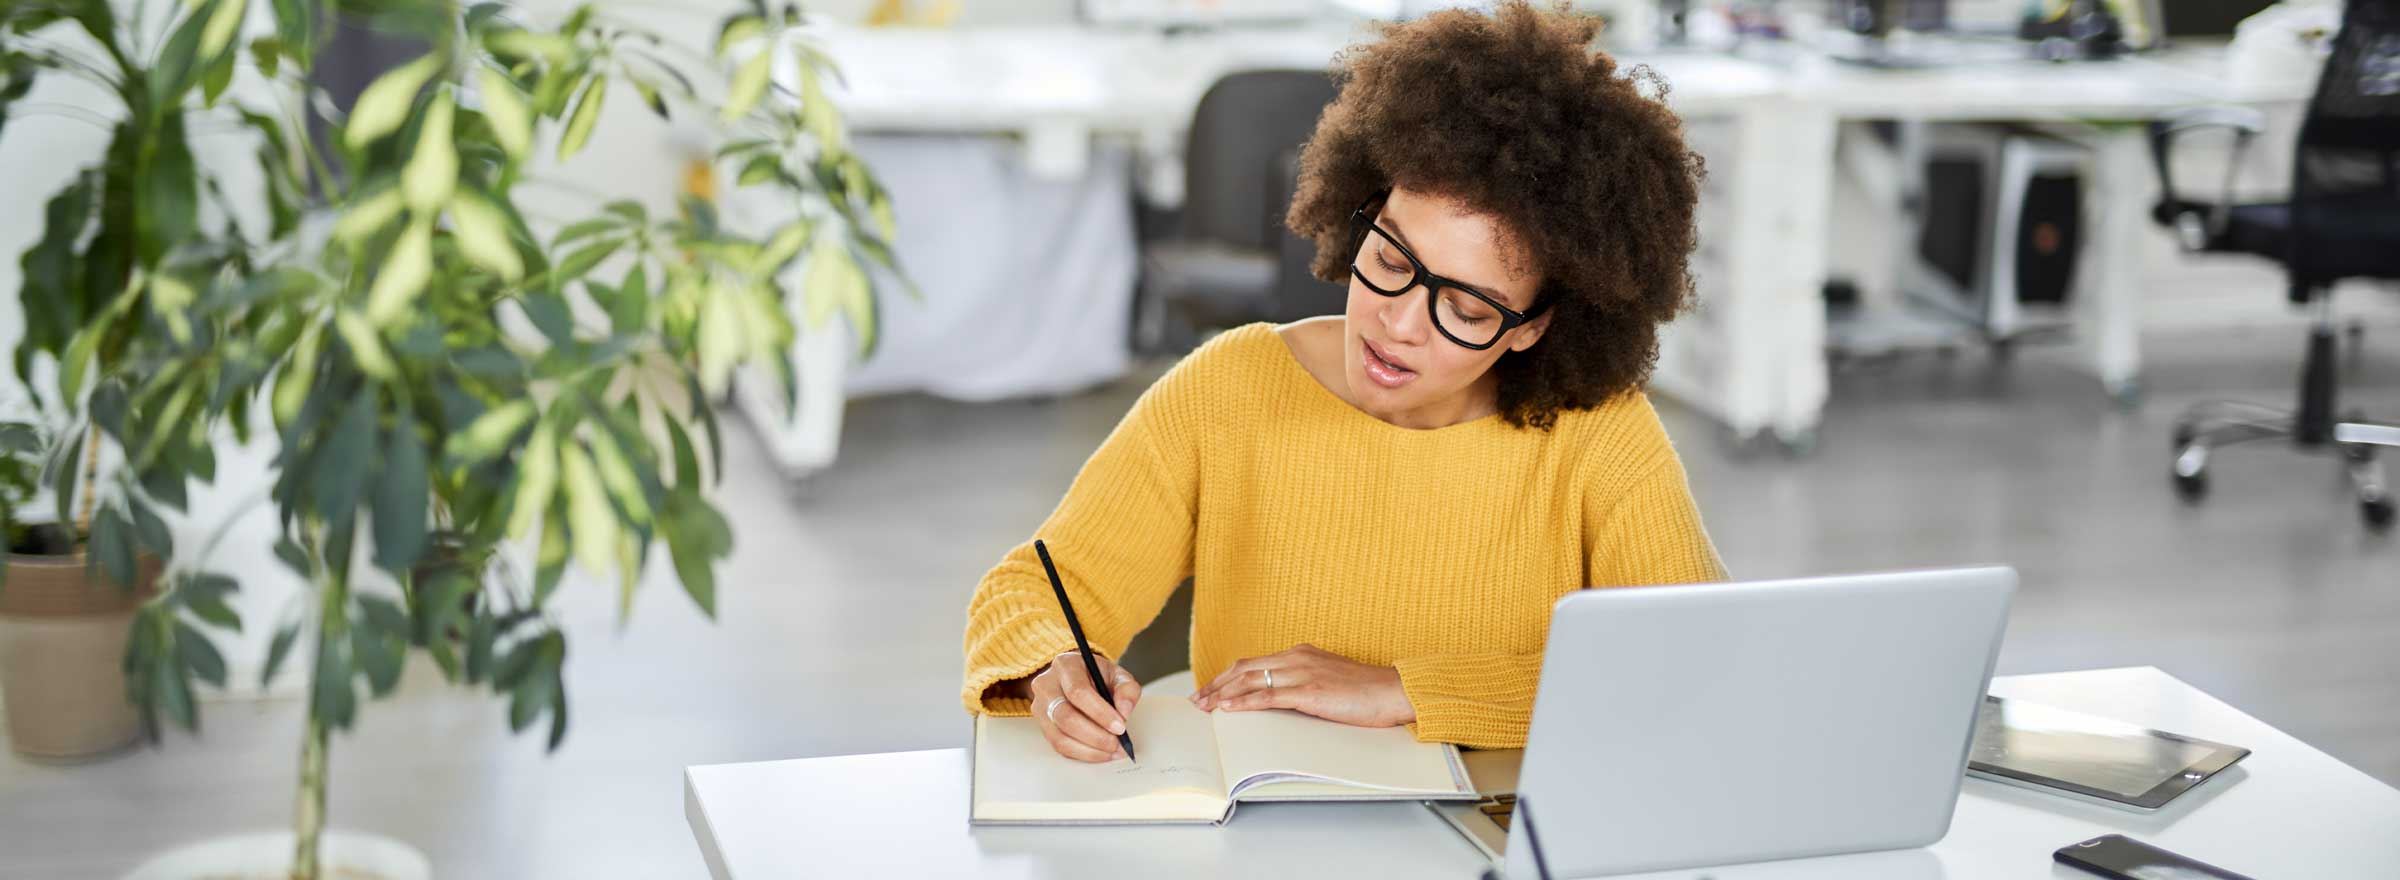 woman sitting at a laptop and writing in a notebook